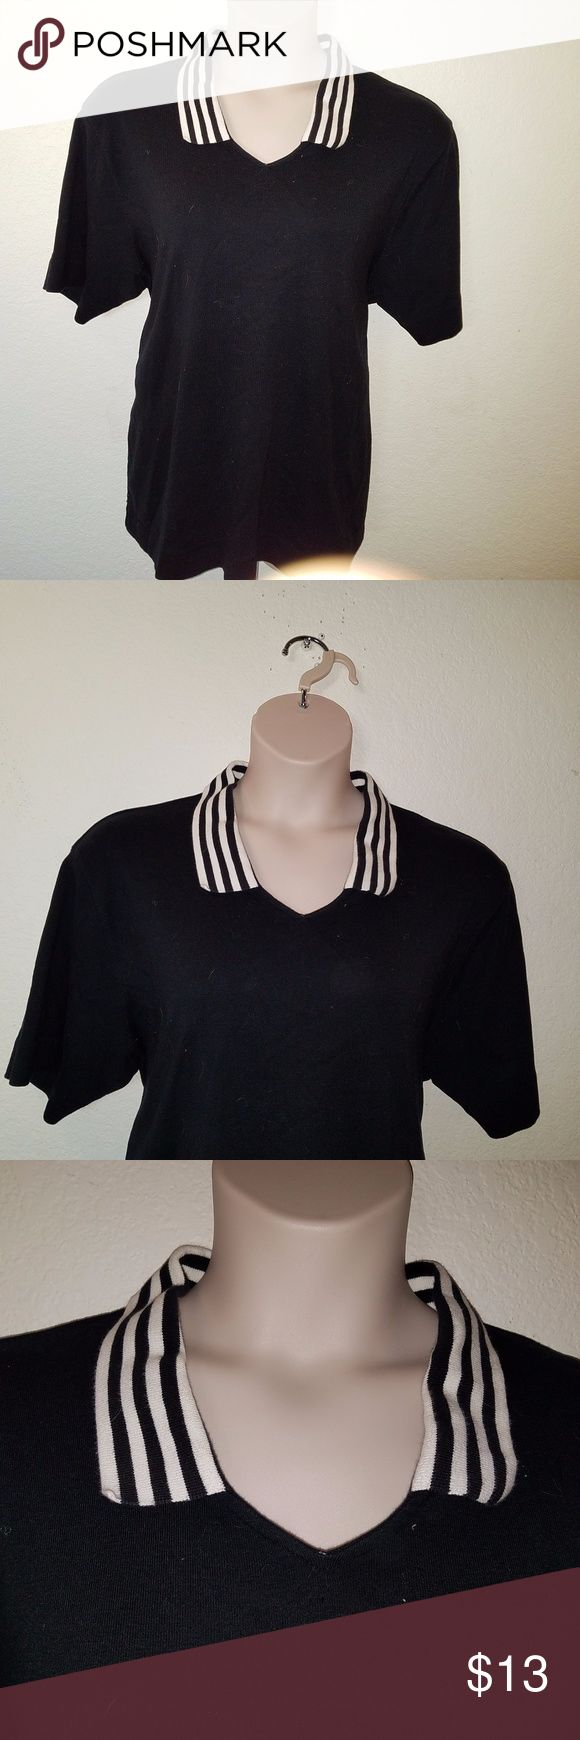 "Nautical Sailing STRIPED Collar Shirt 3X 24 26 EUC L@@KS Brand NEW! NO Flaws Noted! TAG Size ~ 3X  BUST ~ Approx 48"" LENGTH ~ Approx 29""  From a SMOKE FREE HOME  I LUV TO SHARE!!!  ***TOP 10% SHARER***  POSH MENTOR!!! I LUV TO MEET NEW POSHERS!  10/1 @@@@@ VEGAS STRONG @@@@  LUPUS AWARENESS MONTH ~ MAY Charter Club Tops Tees - Short Sleeve"